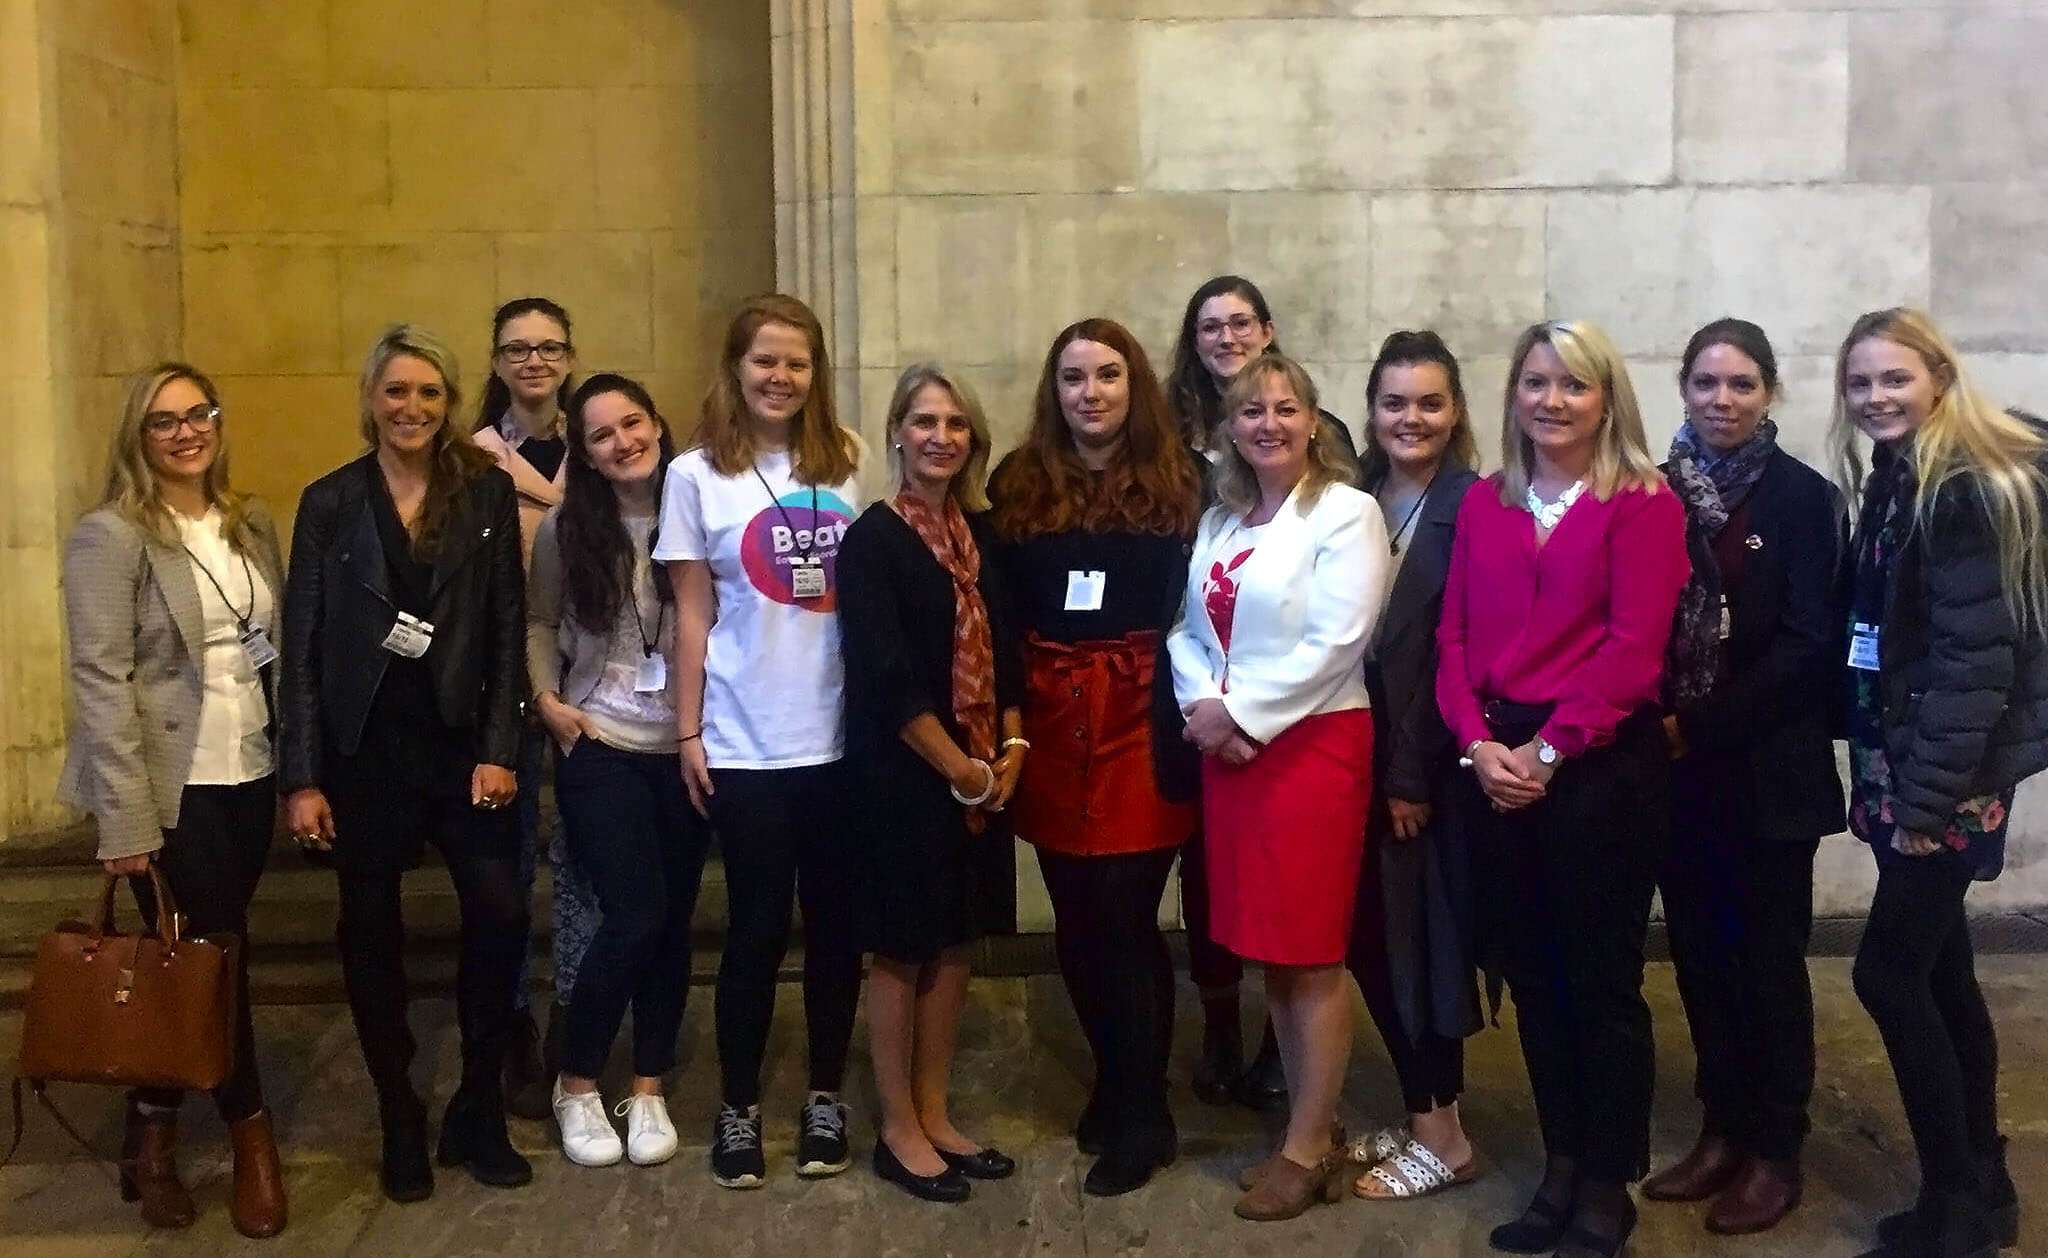 Wera_and_eating_disorder_campaigners_in_Parliament.jpg